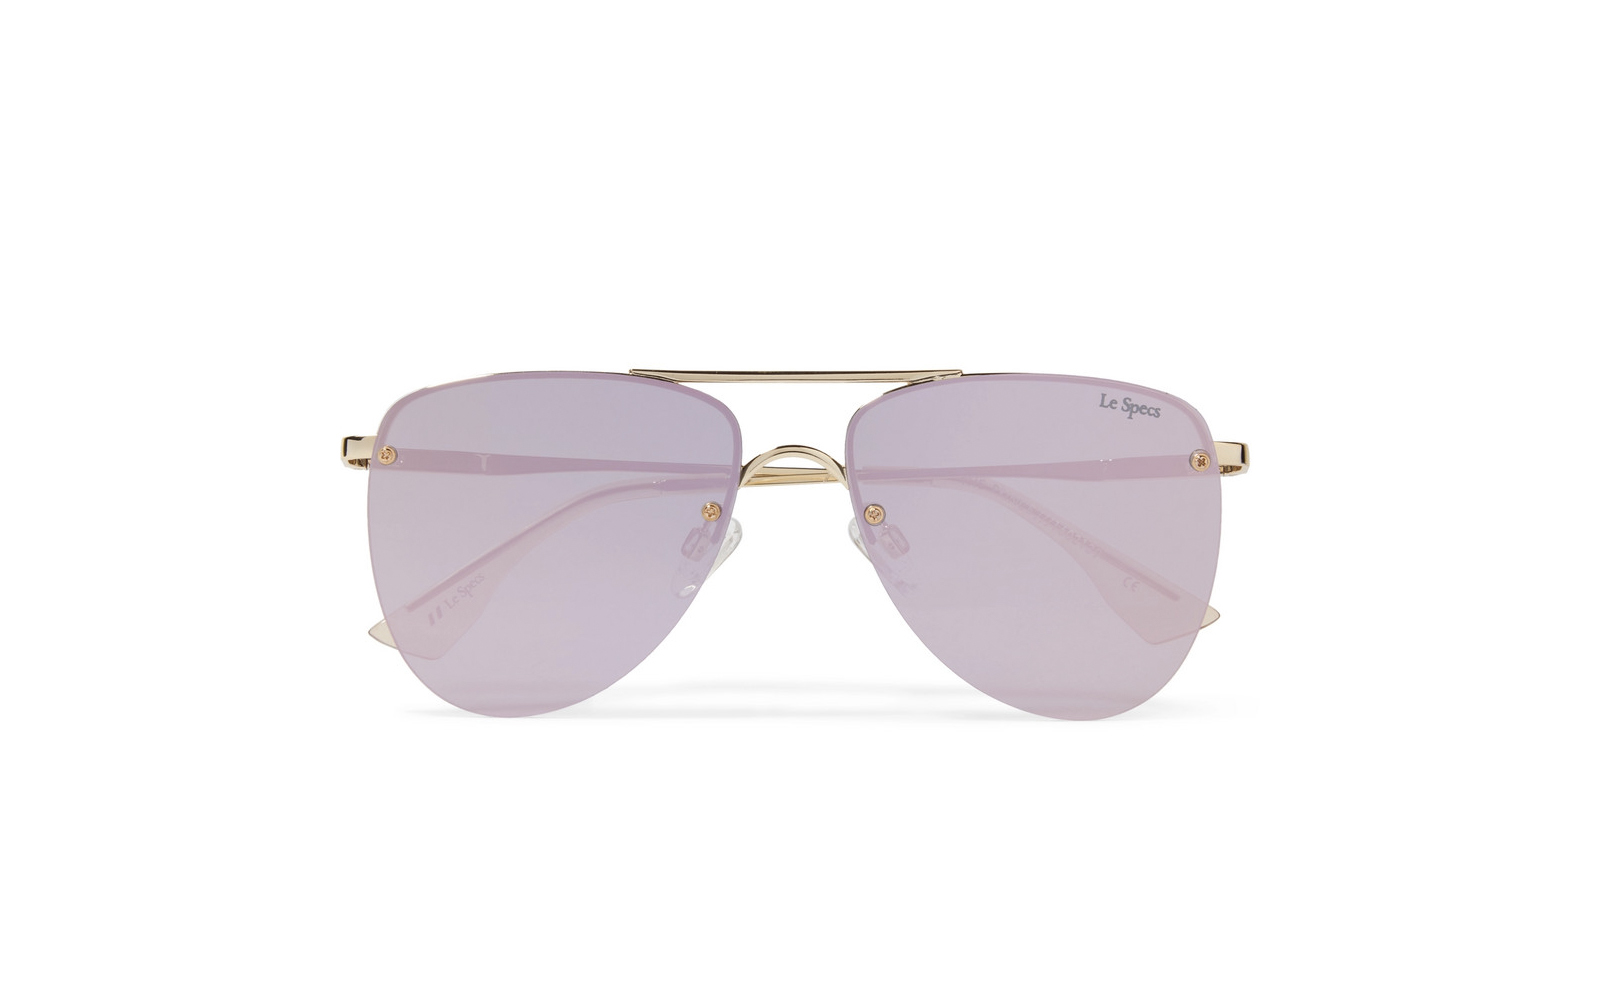 Le Specs 'The Prince' Aviator Sunglasses